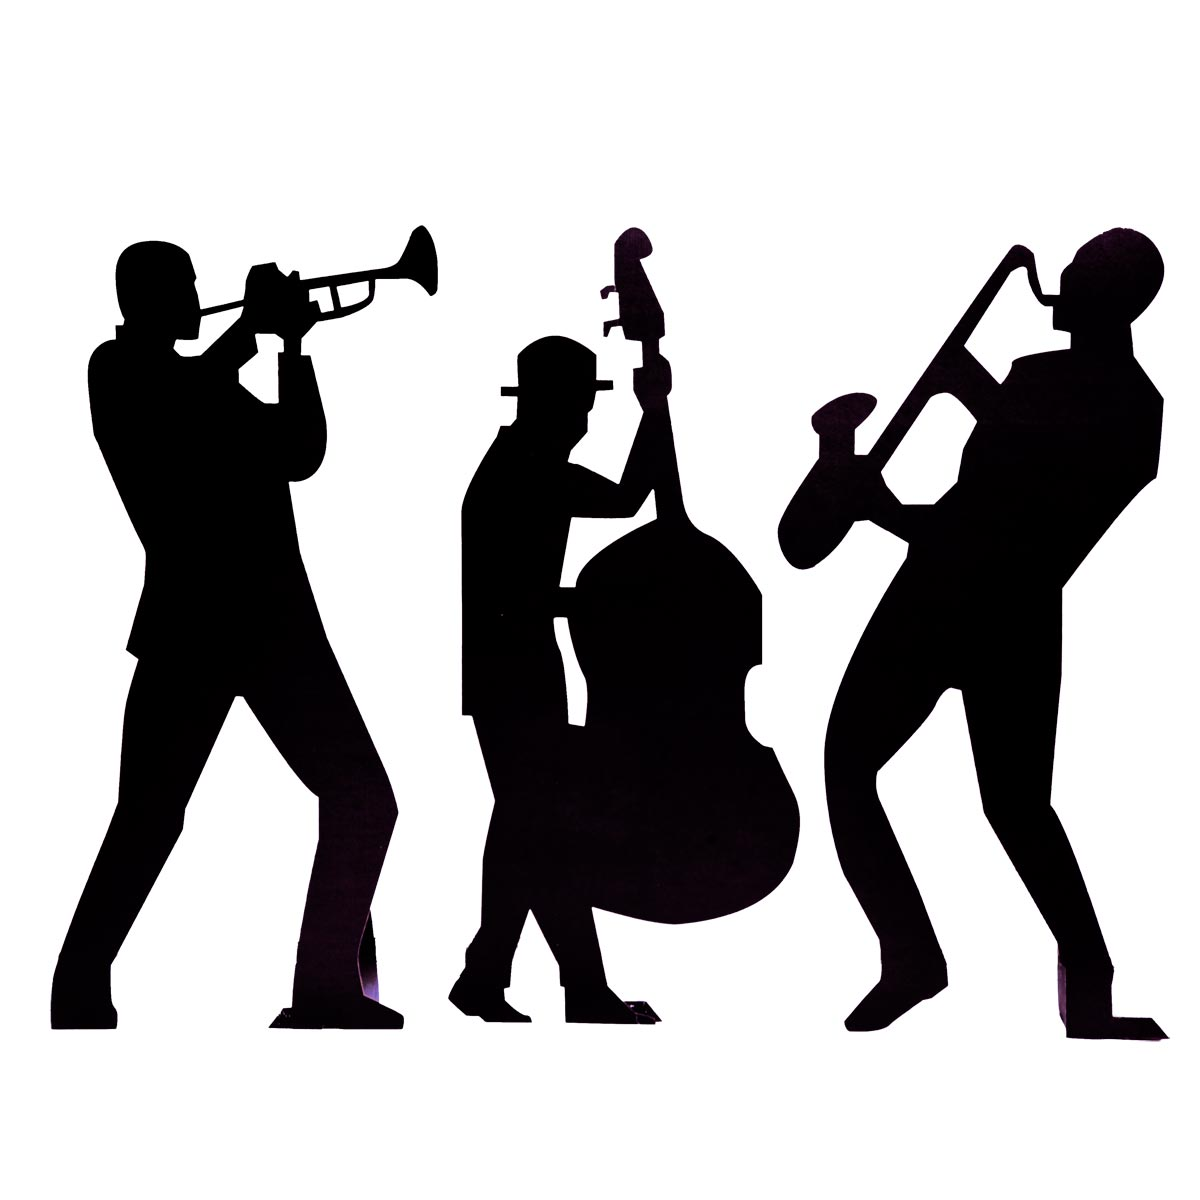 All star jazz clipart clipart images gallery for free.